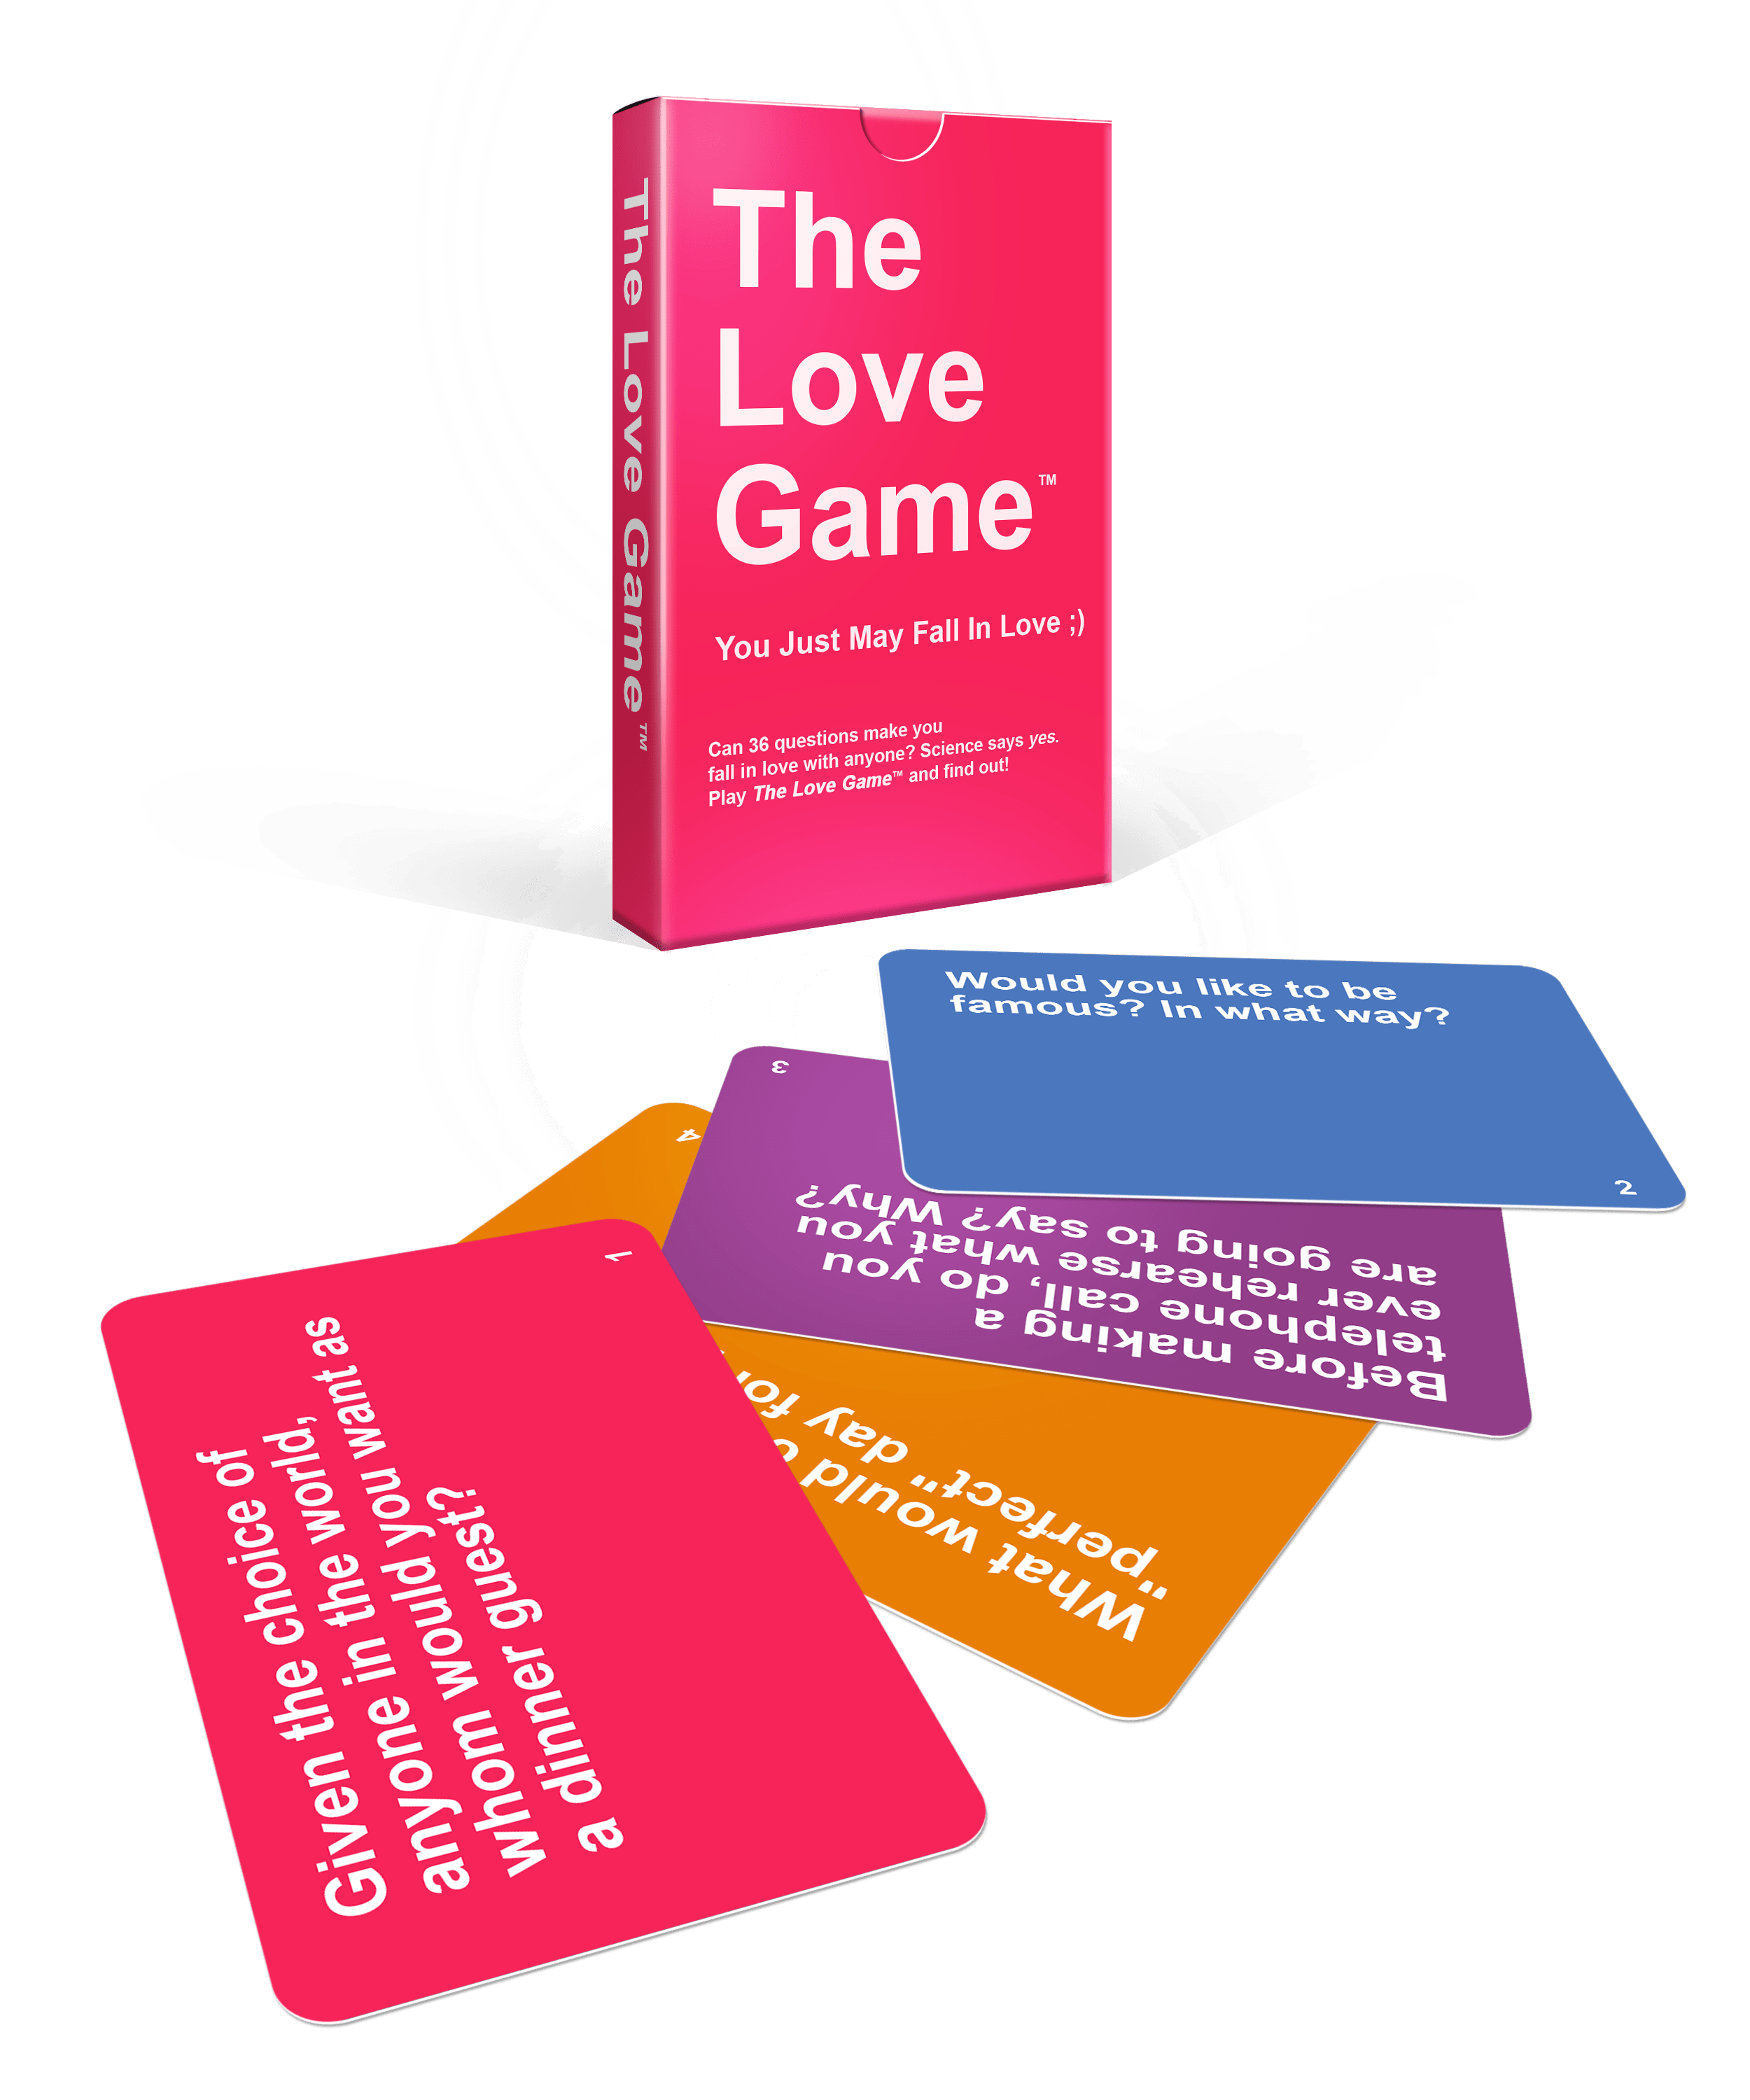 Uncategorized Love Scale Game a game for falling in love indiegogo with 5000 funding we can reach the economies of scale need to produce premium quality product at great price